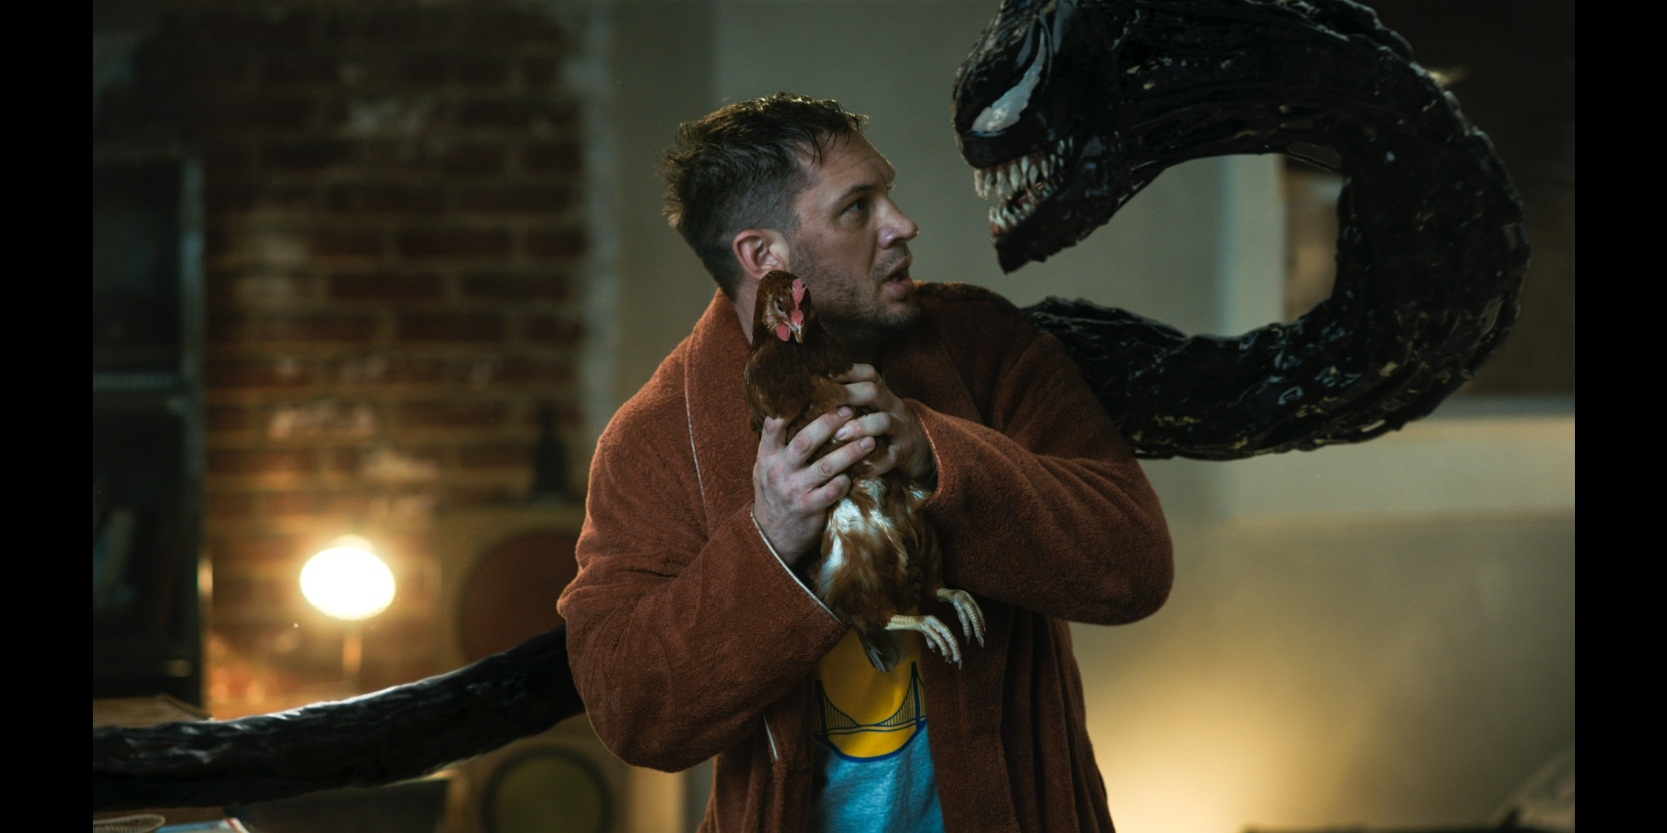 IANS Review: 'Venom: Let There Be Carnage' appears rushed from start to finish (IANS Rating: **1/2)